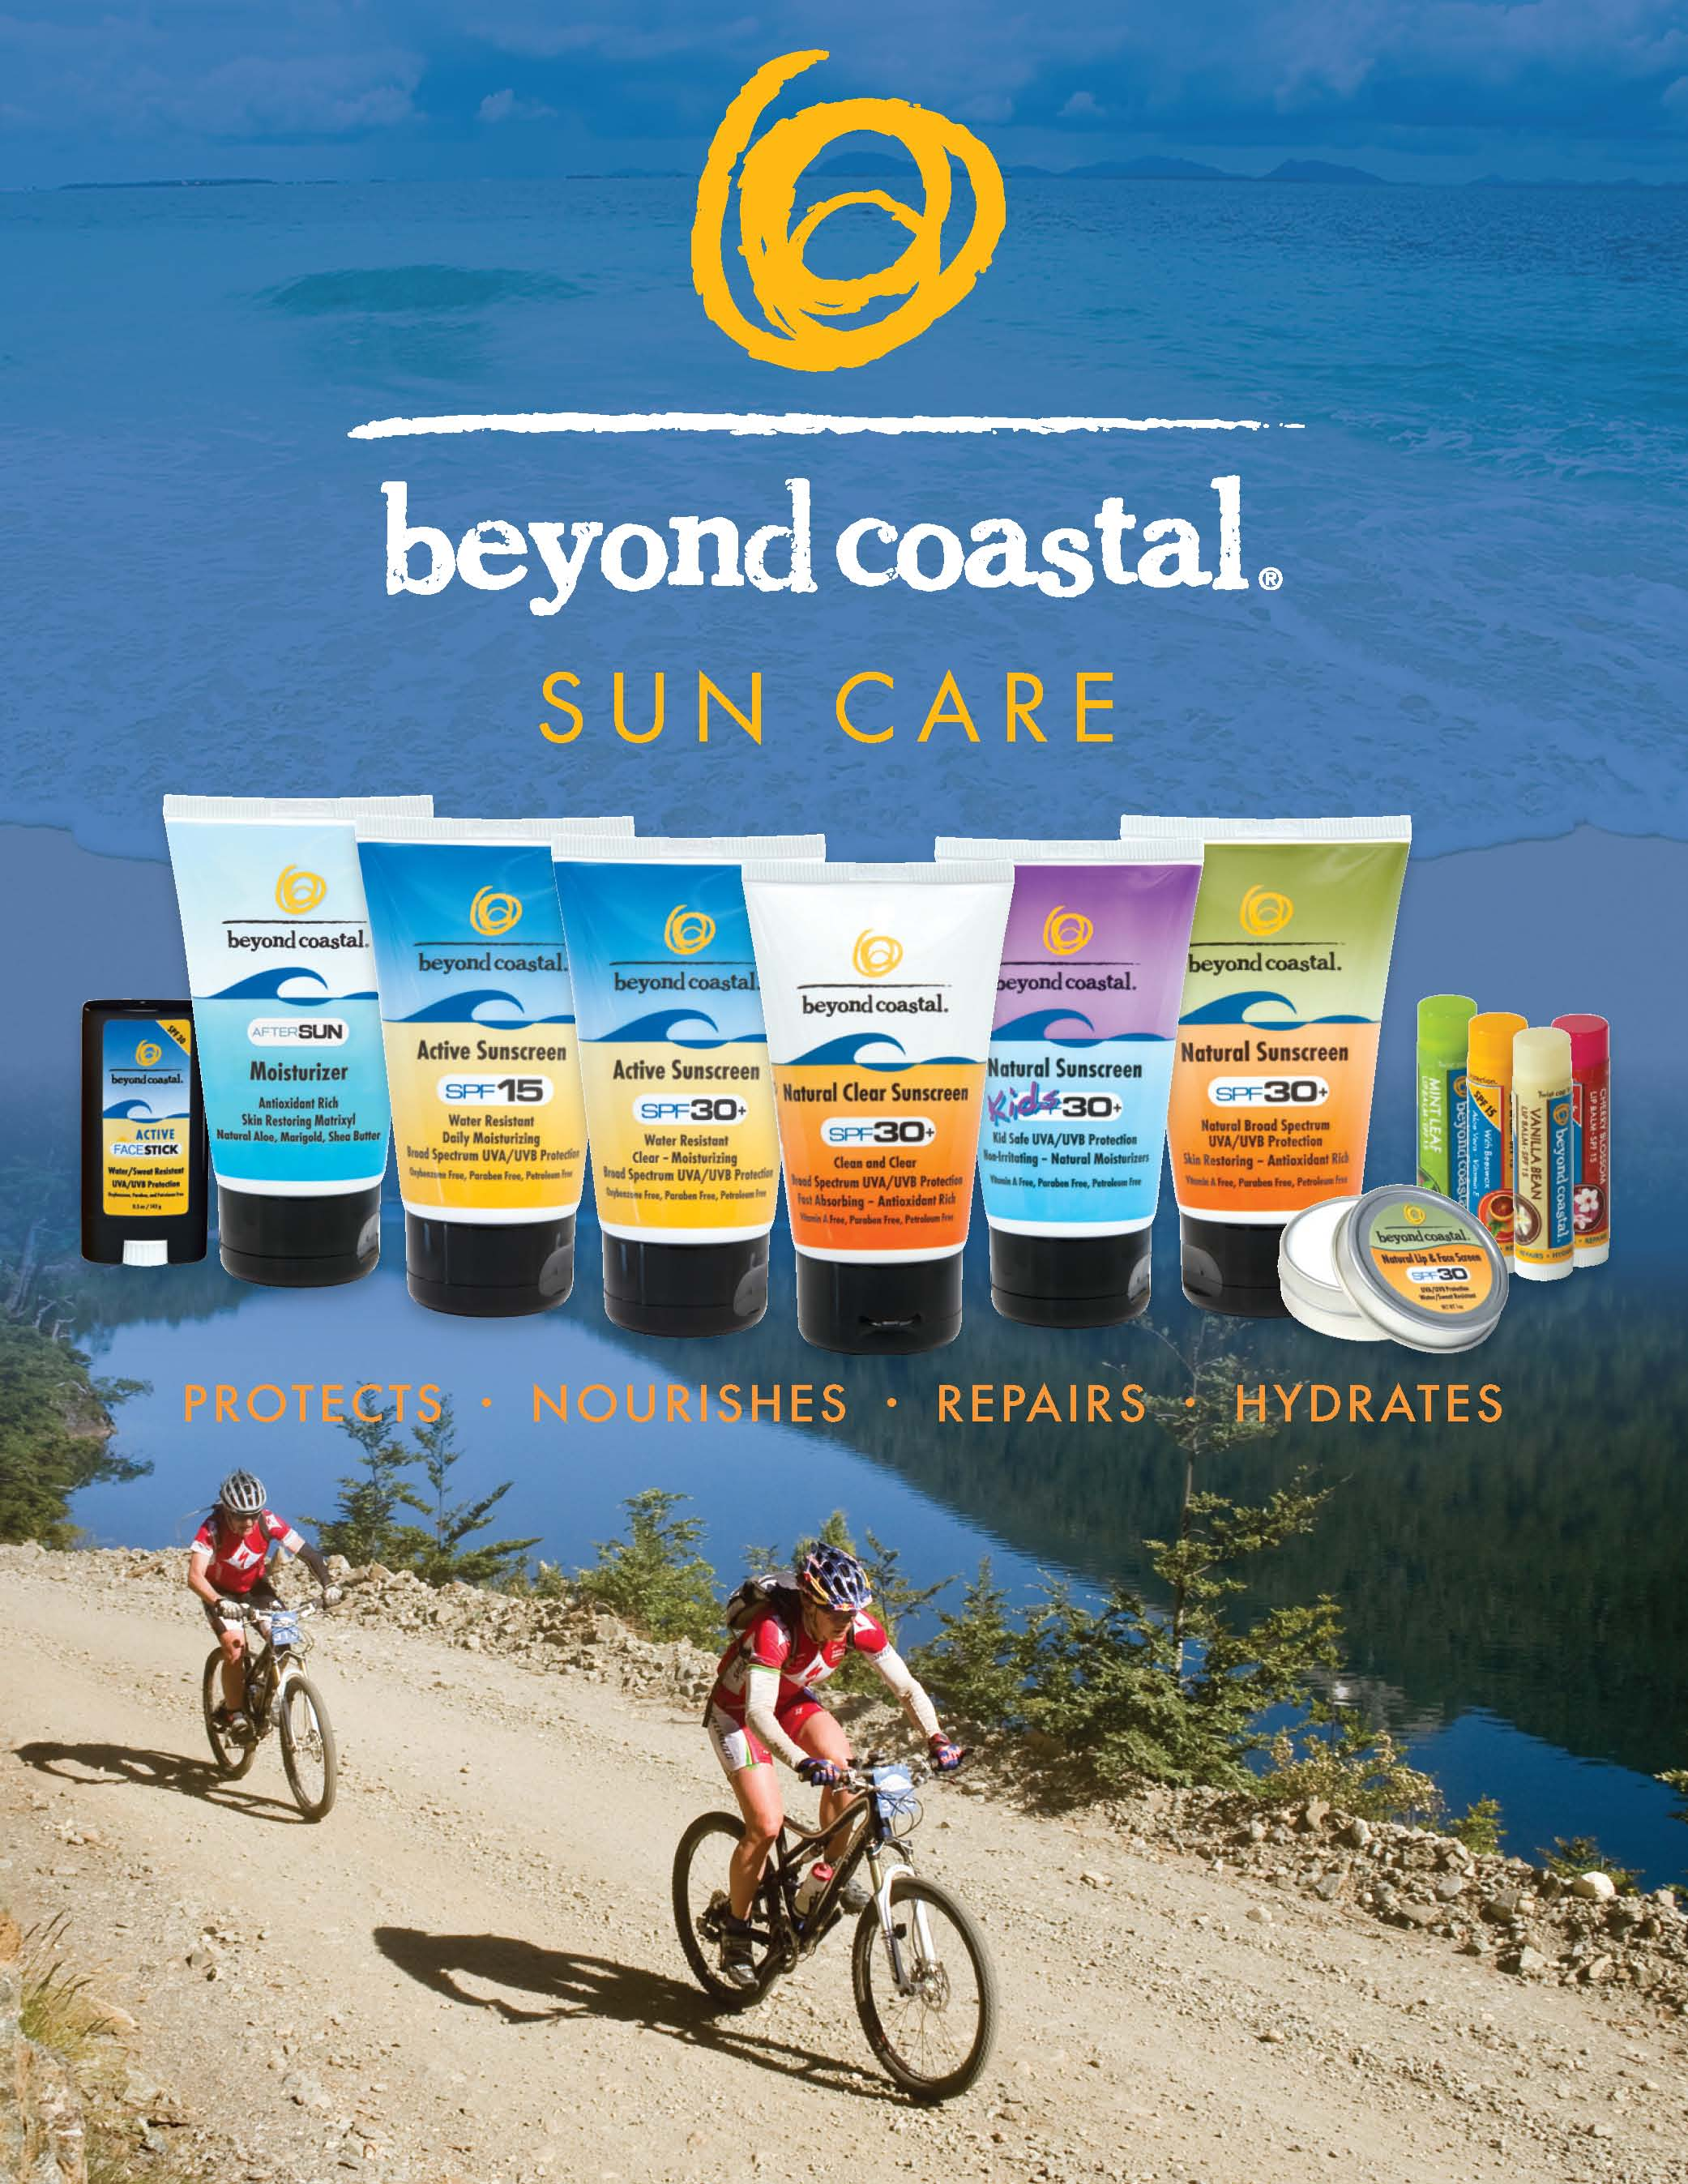 Beyond Coastal sun care sunblock products